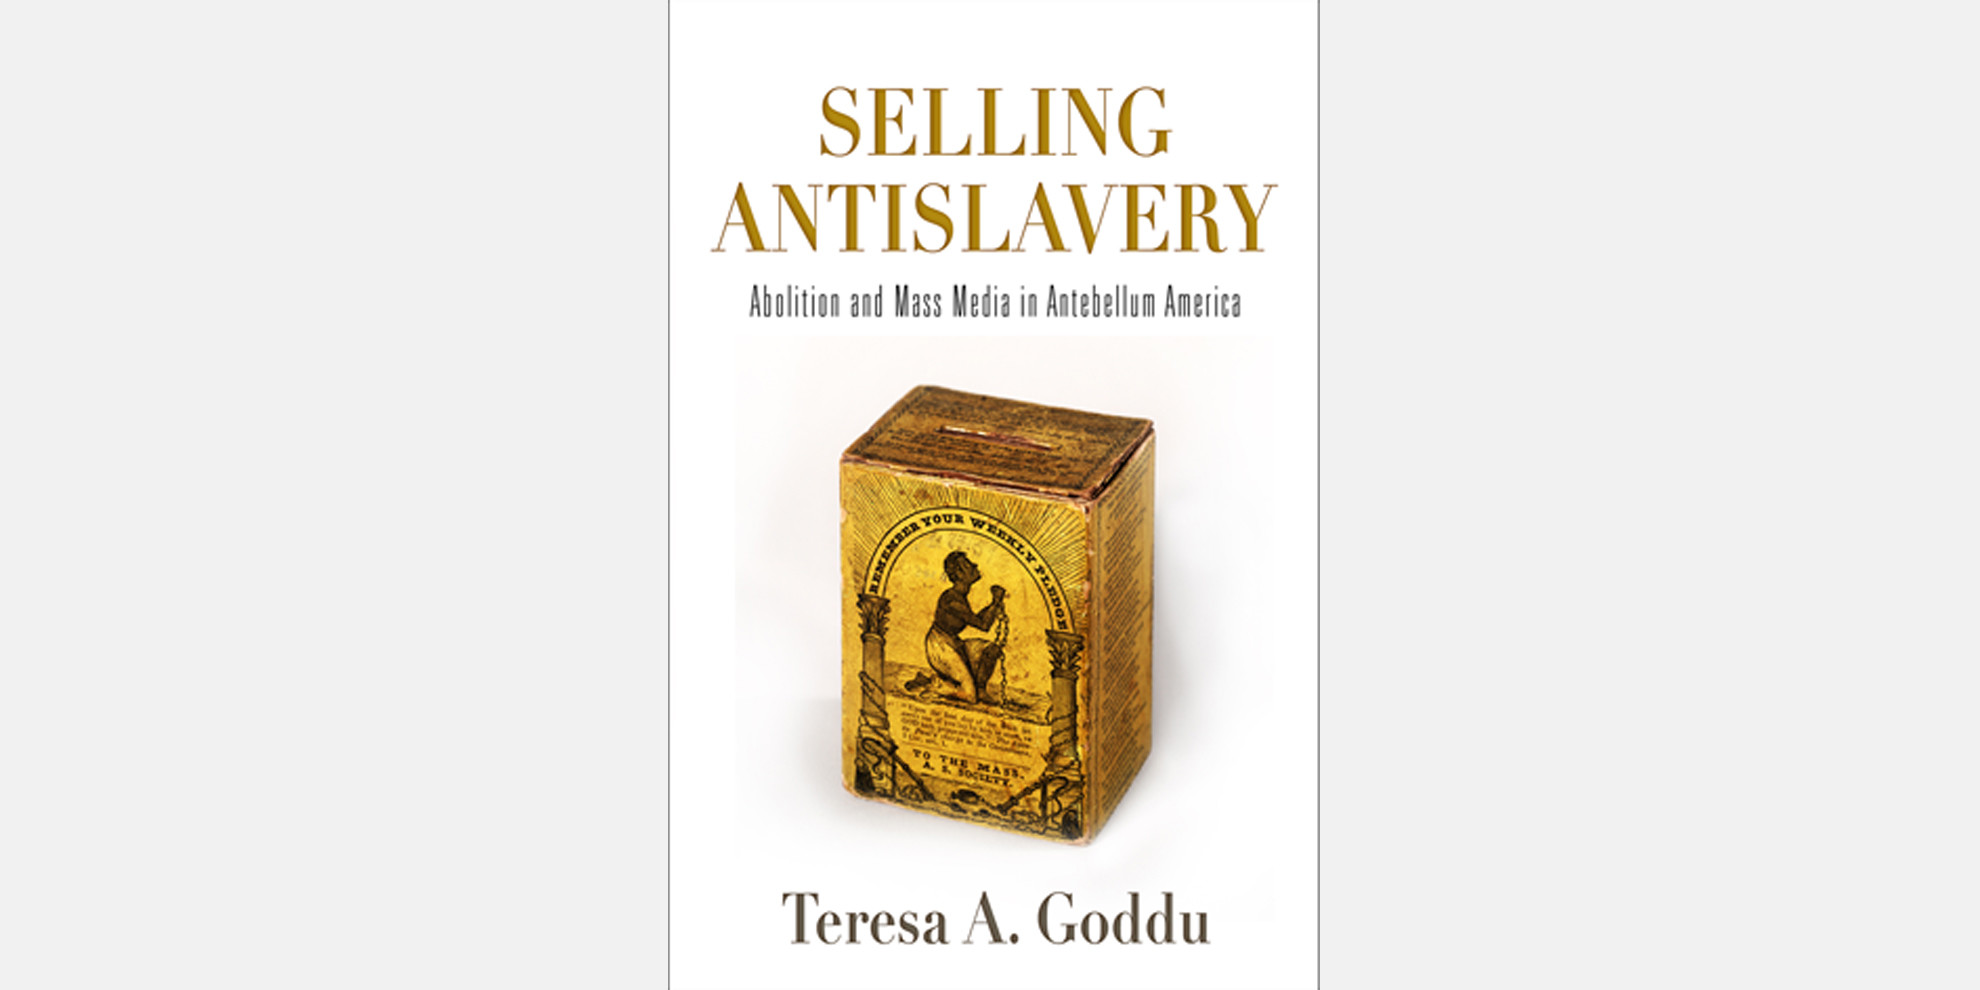 Teresa Goddu - Selling Antislavery: Abolition and Mass Media in Antebellum America (2020)